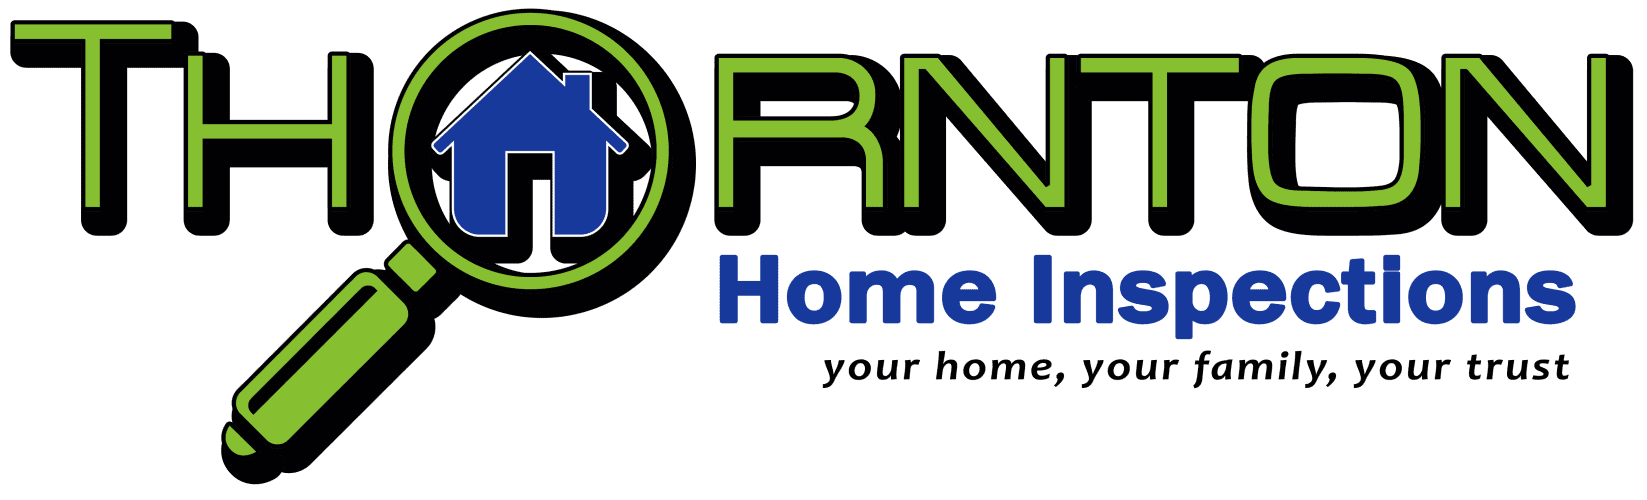 Thornton Home Inspections Announces Expansion Of Services To Tri-State Area